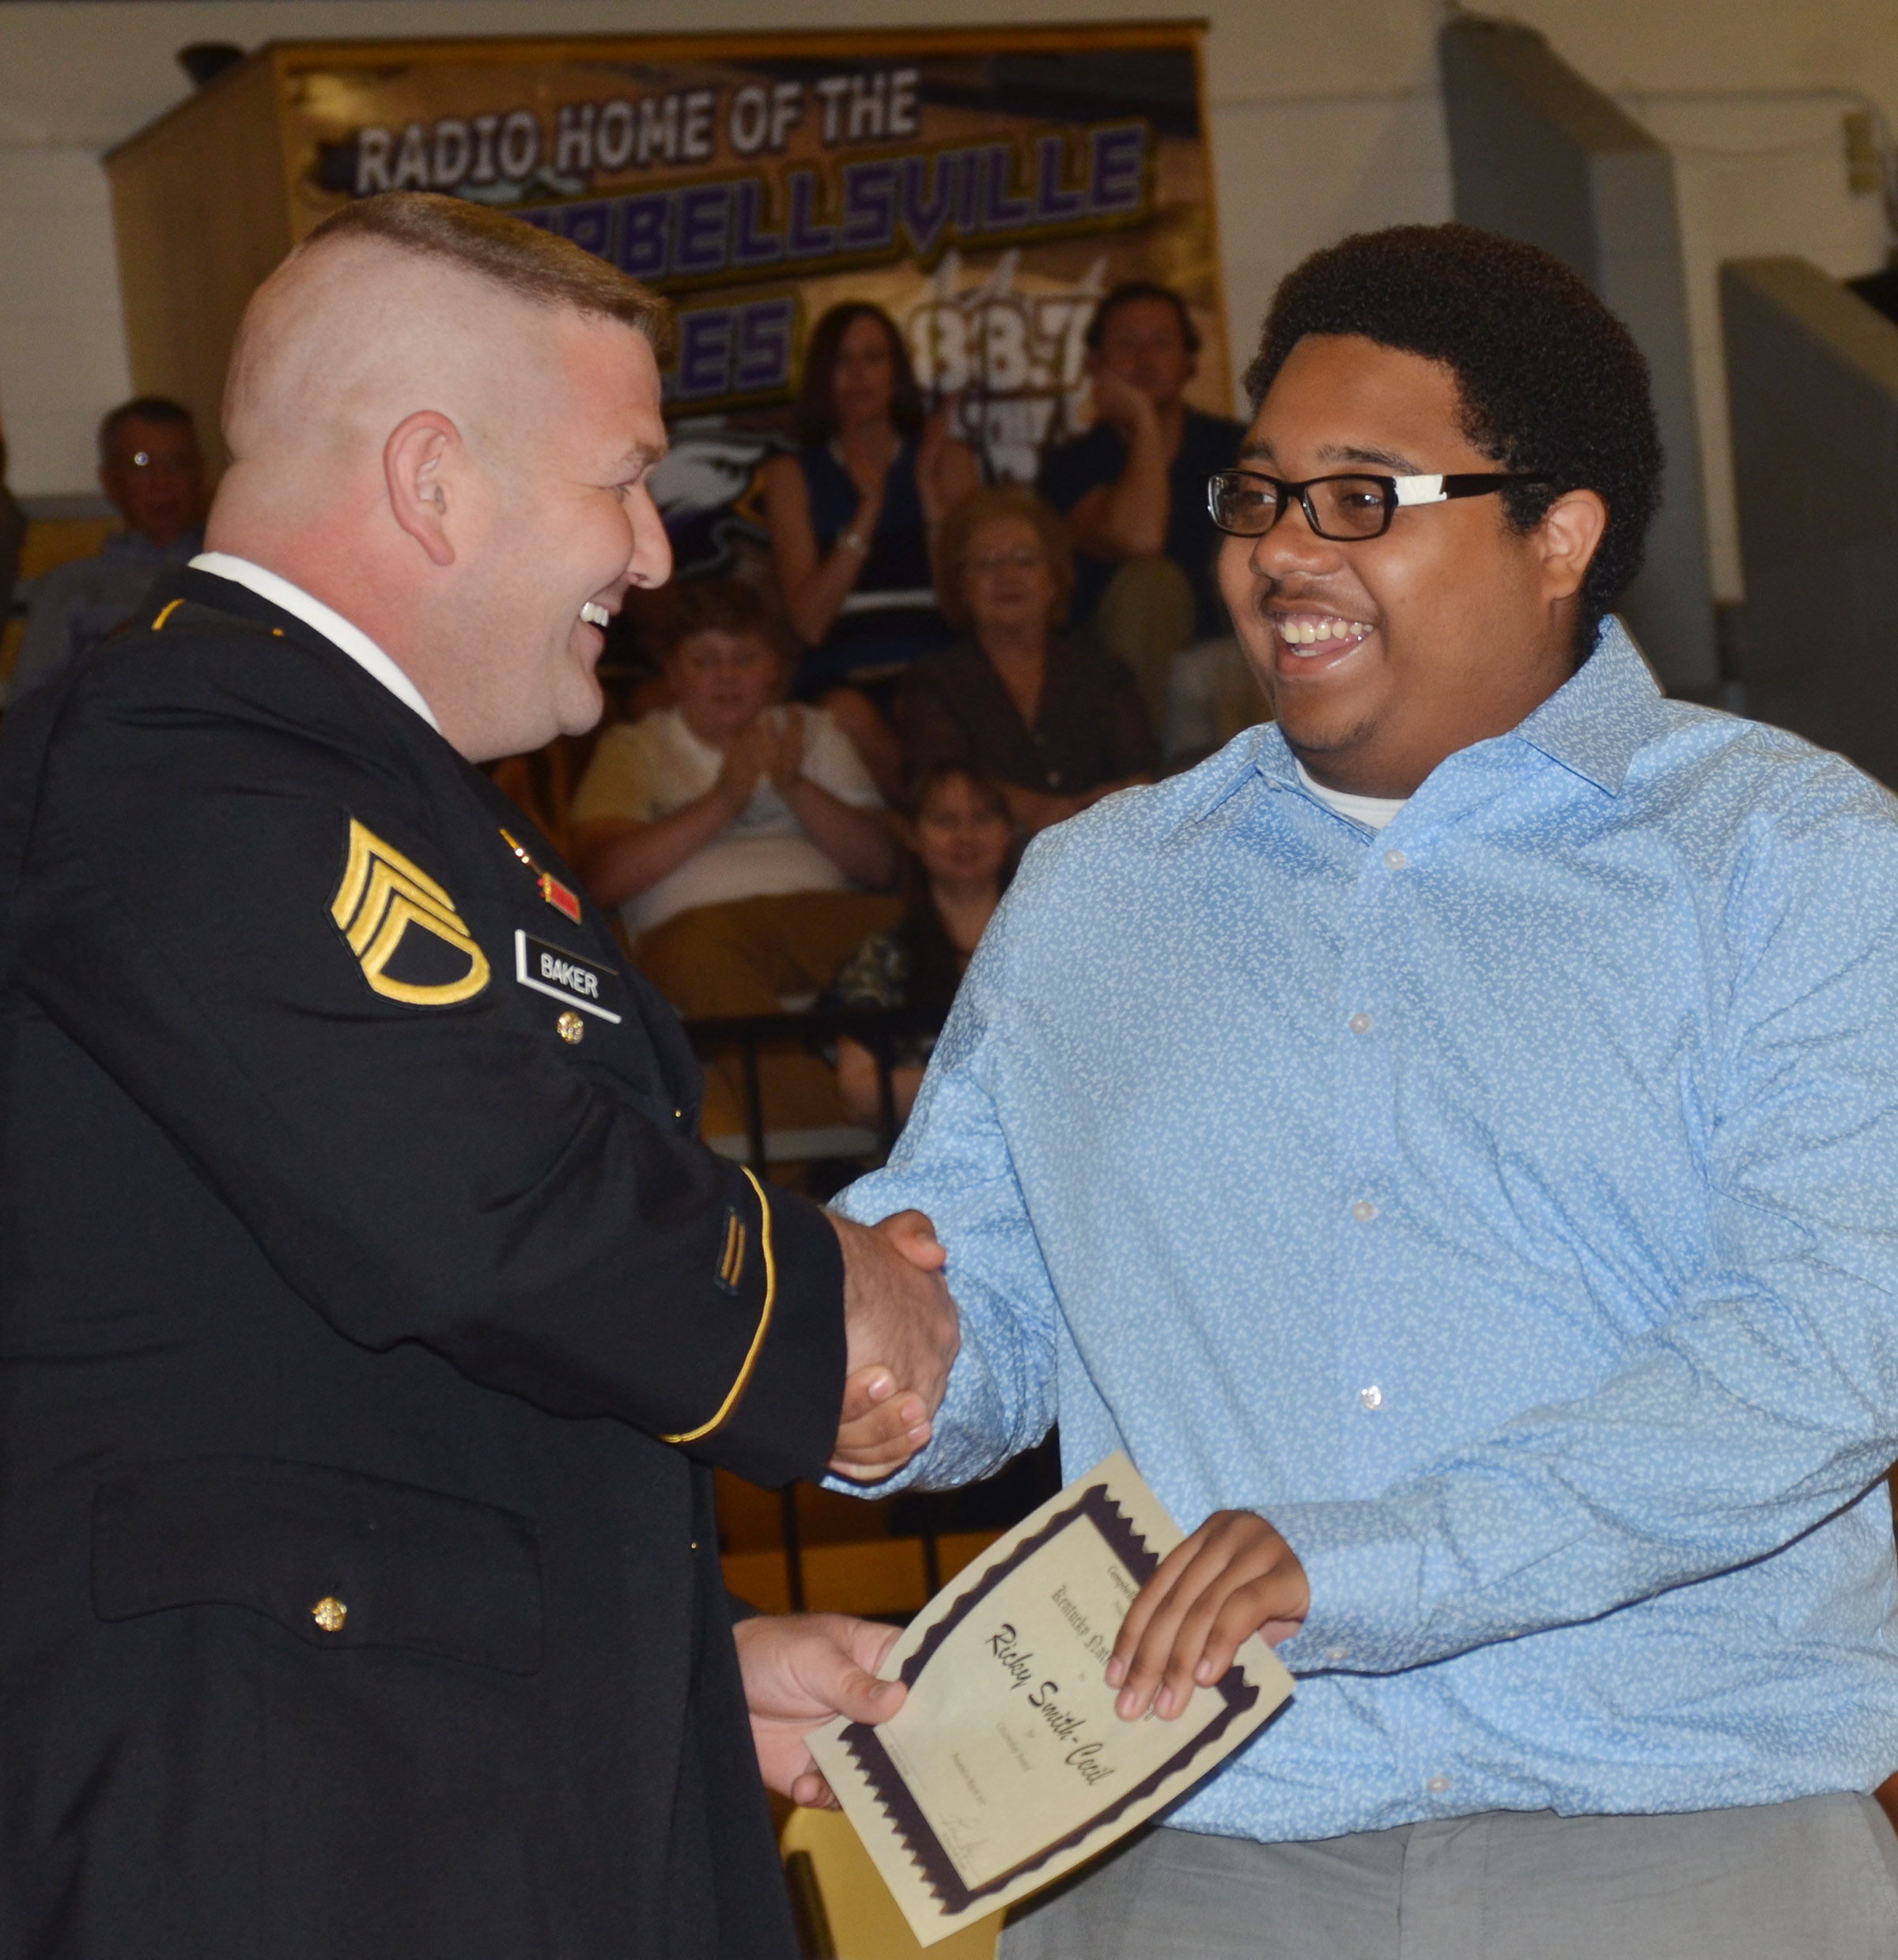 Ricky Smith-Cecil receives recognition from Sgt. Phillips Baker of the National Guard.